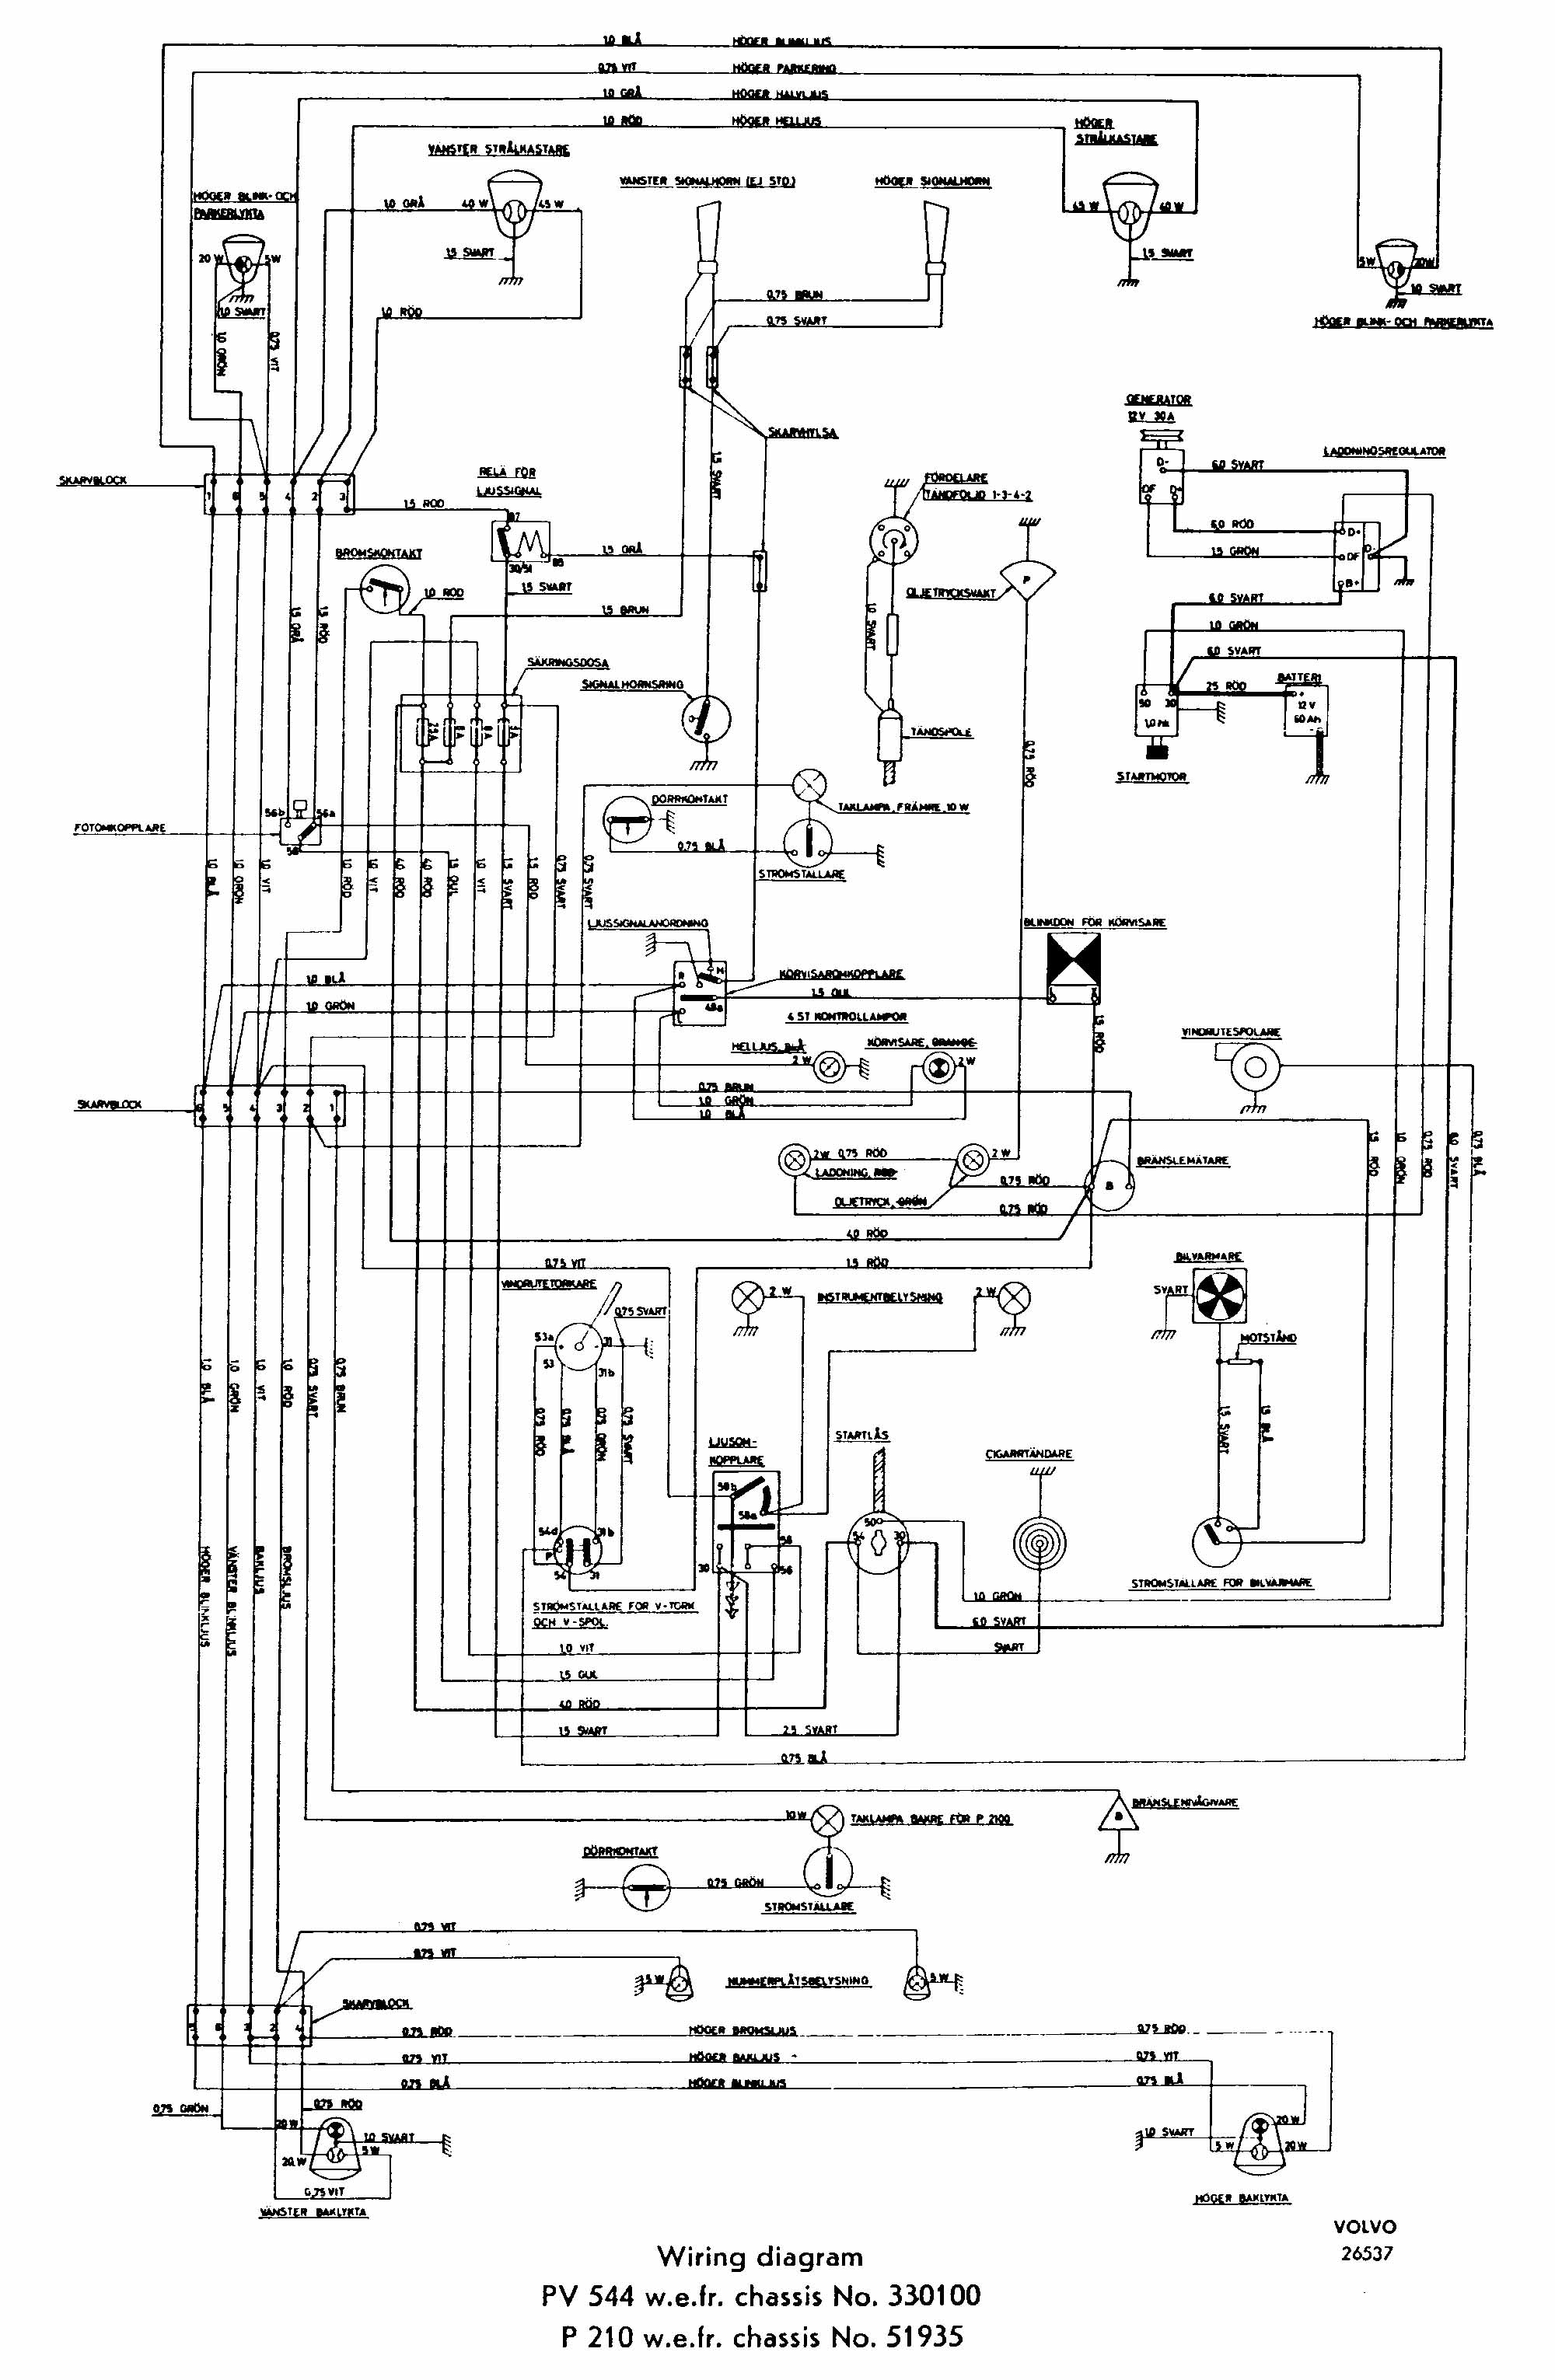 55 Beautiful Volvo 240 Fuel Pump Relay Wiring Diagram